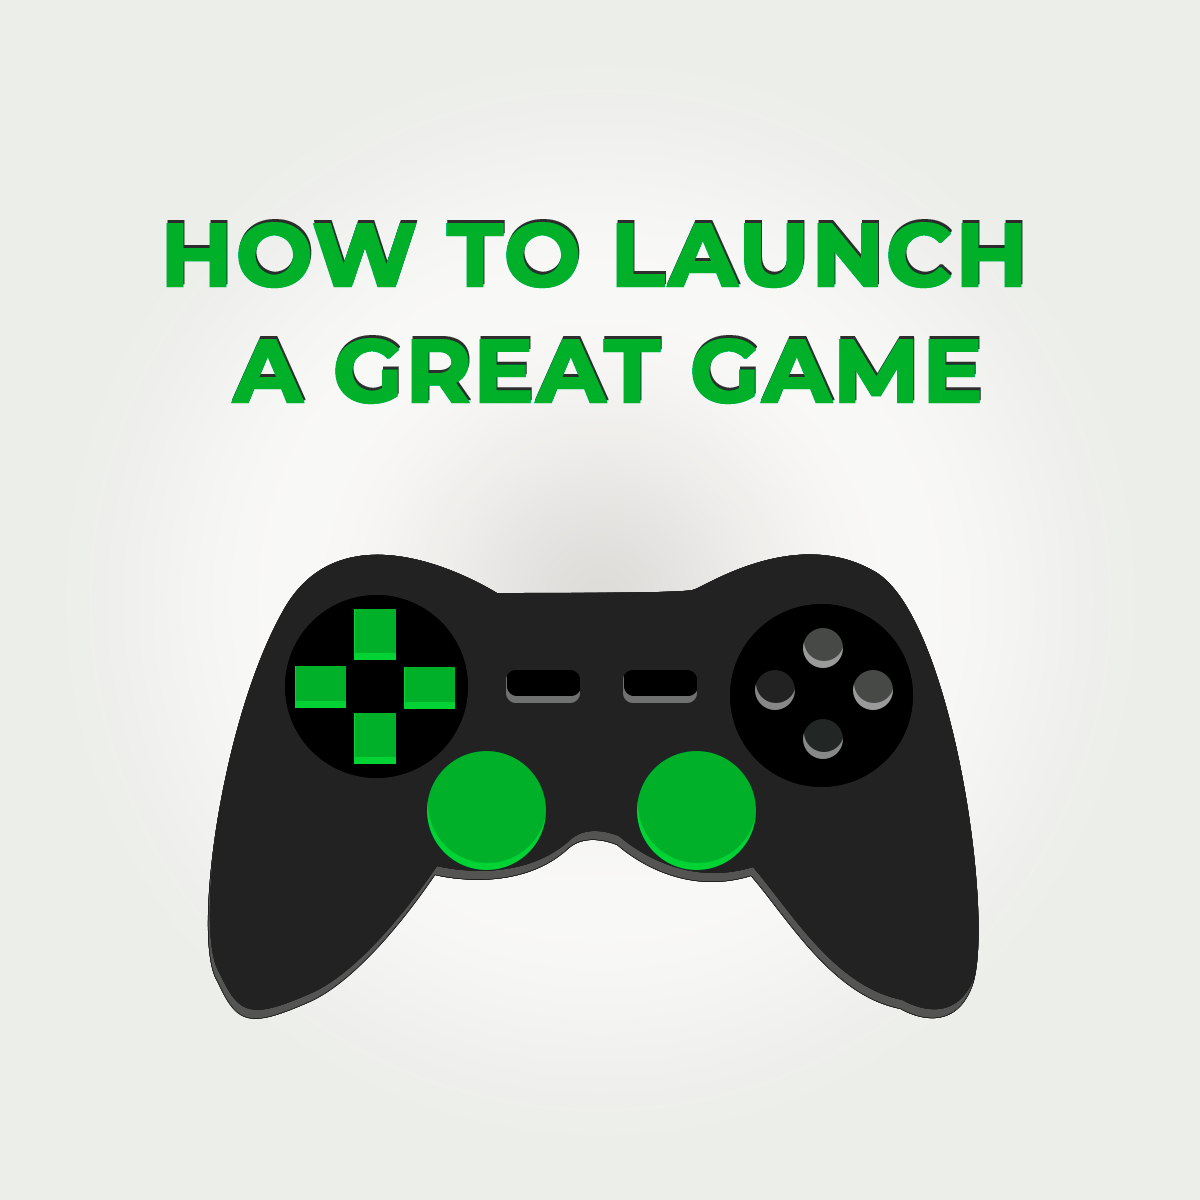 How to Launch a Great Game